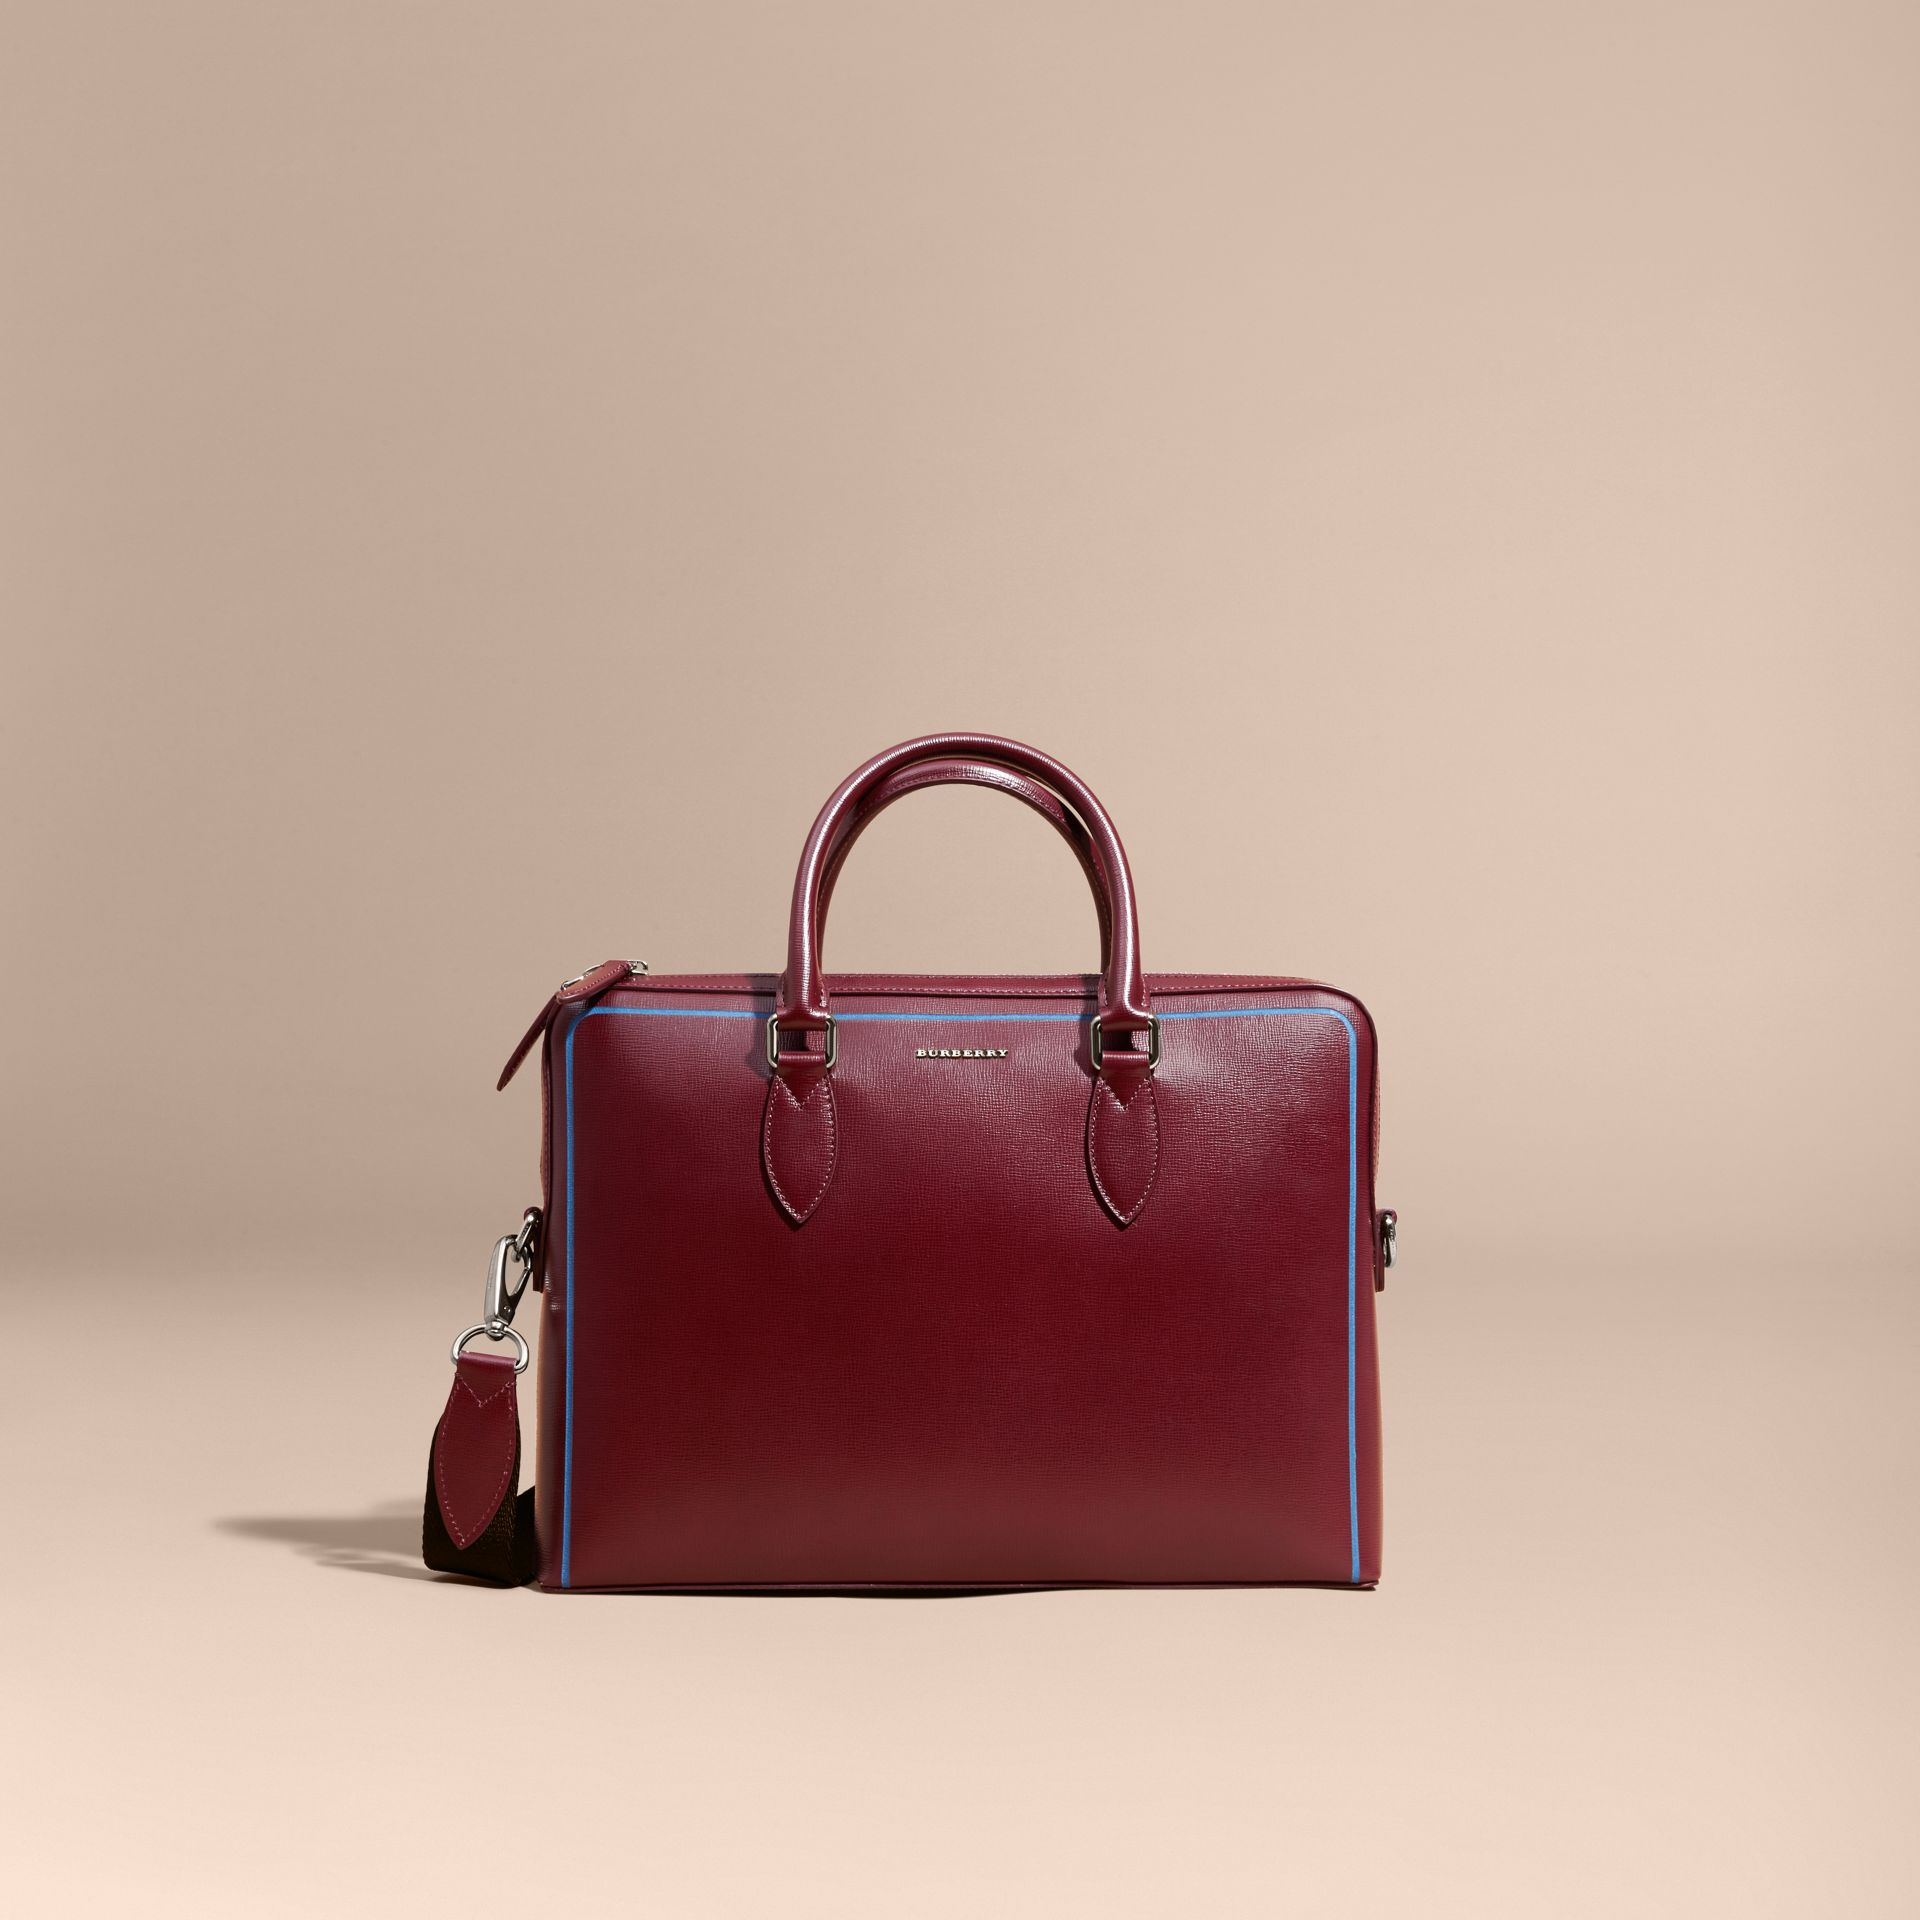 Burgundy red The Slim Barrow Bag in London Leather with Border Detail Burgundy Red - gallery image 9